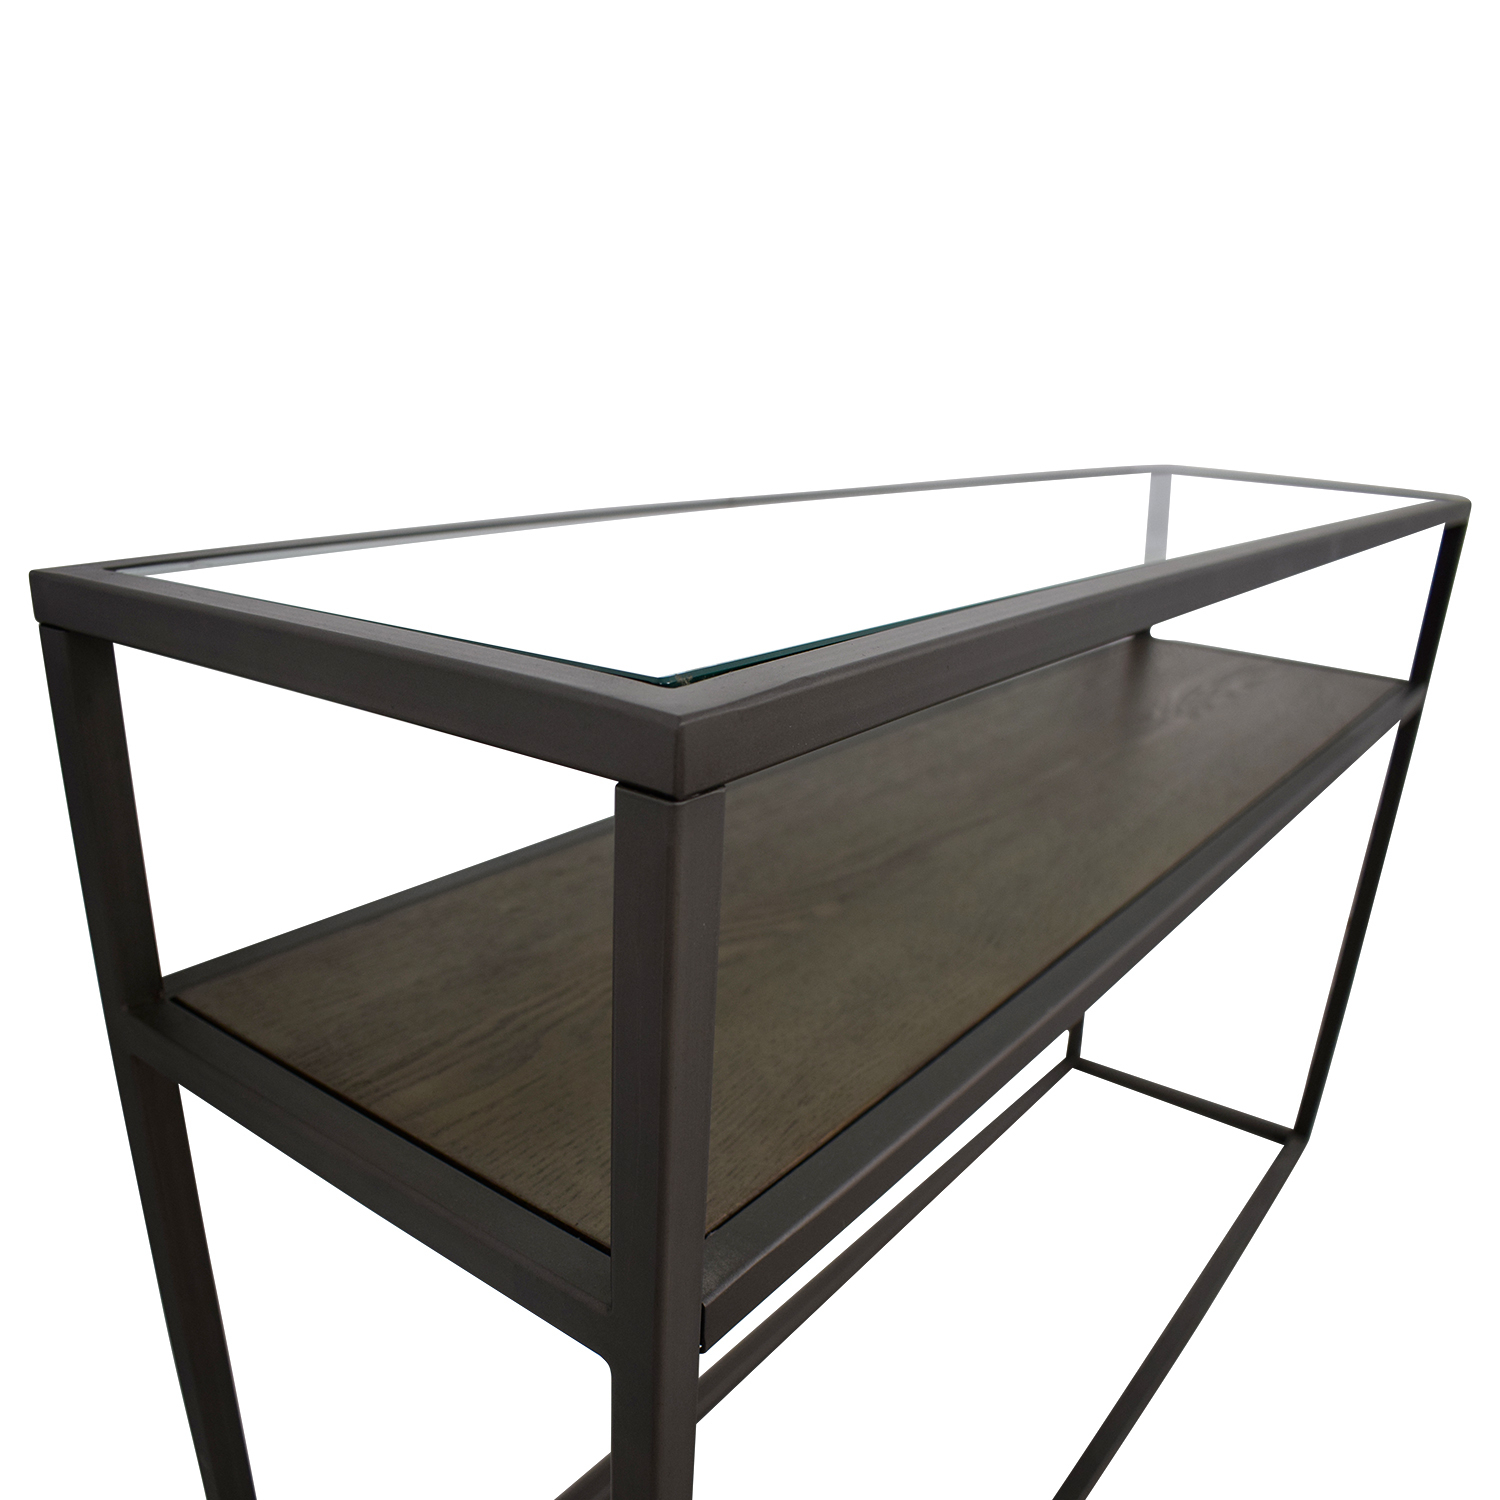 Crate & Barrel Switch Glass Wood And Metal Console Table Throughout Switch Console Tables (View 5 of 30)